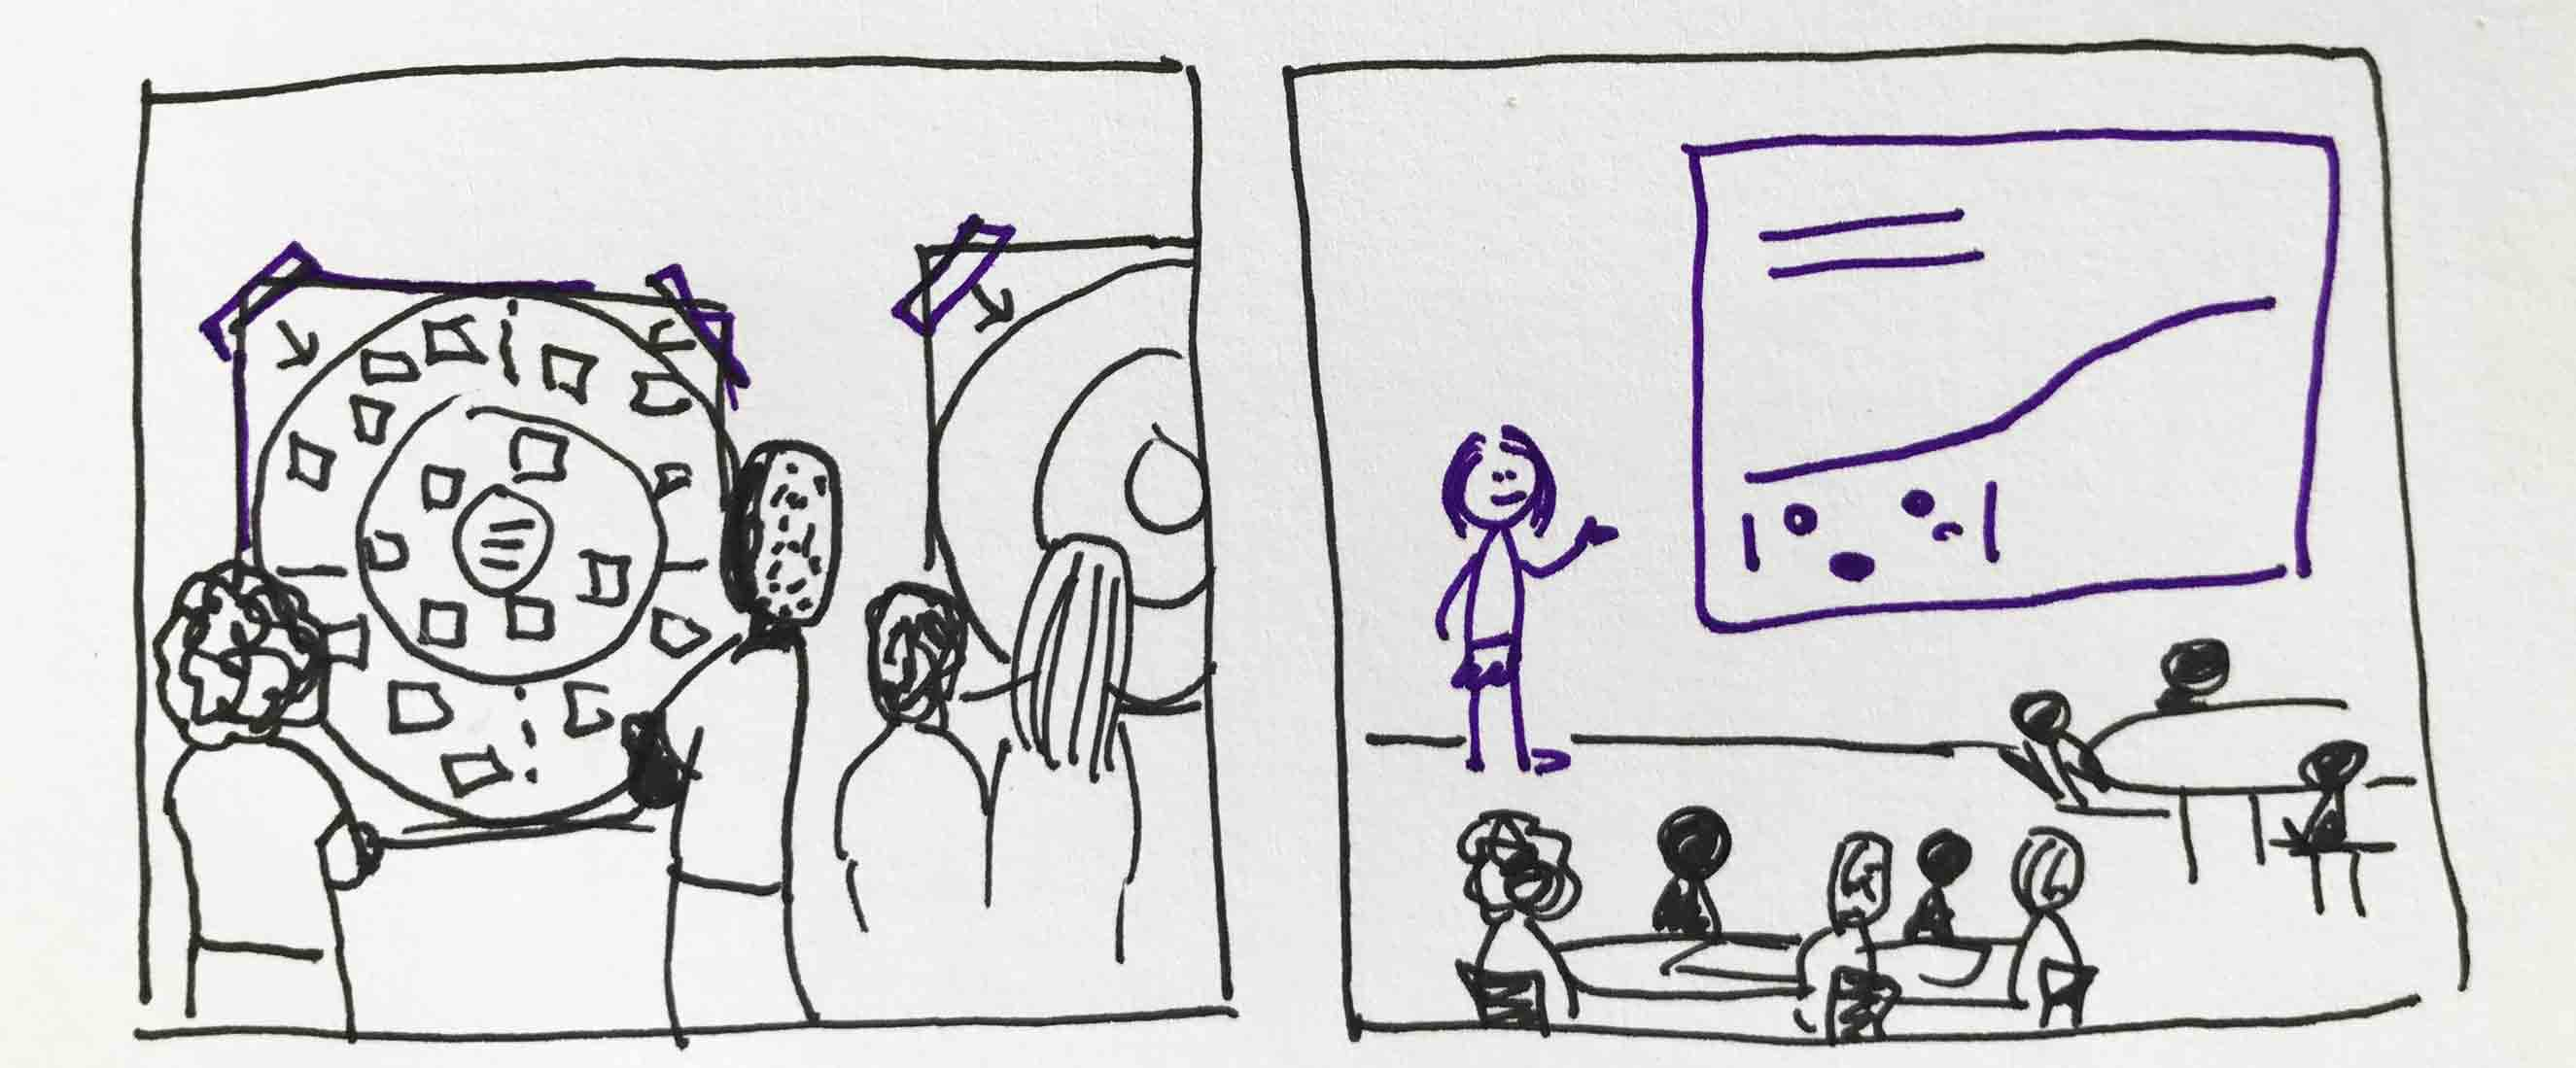 Sketch of storyboard panels showing people critiquing artwork hanging on walls and person presenting from front of room